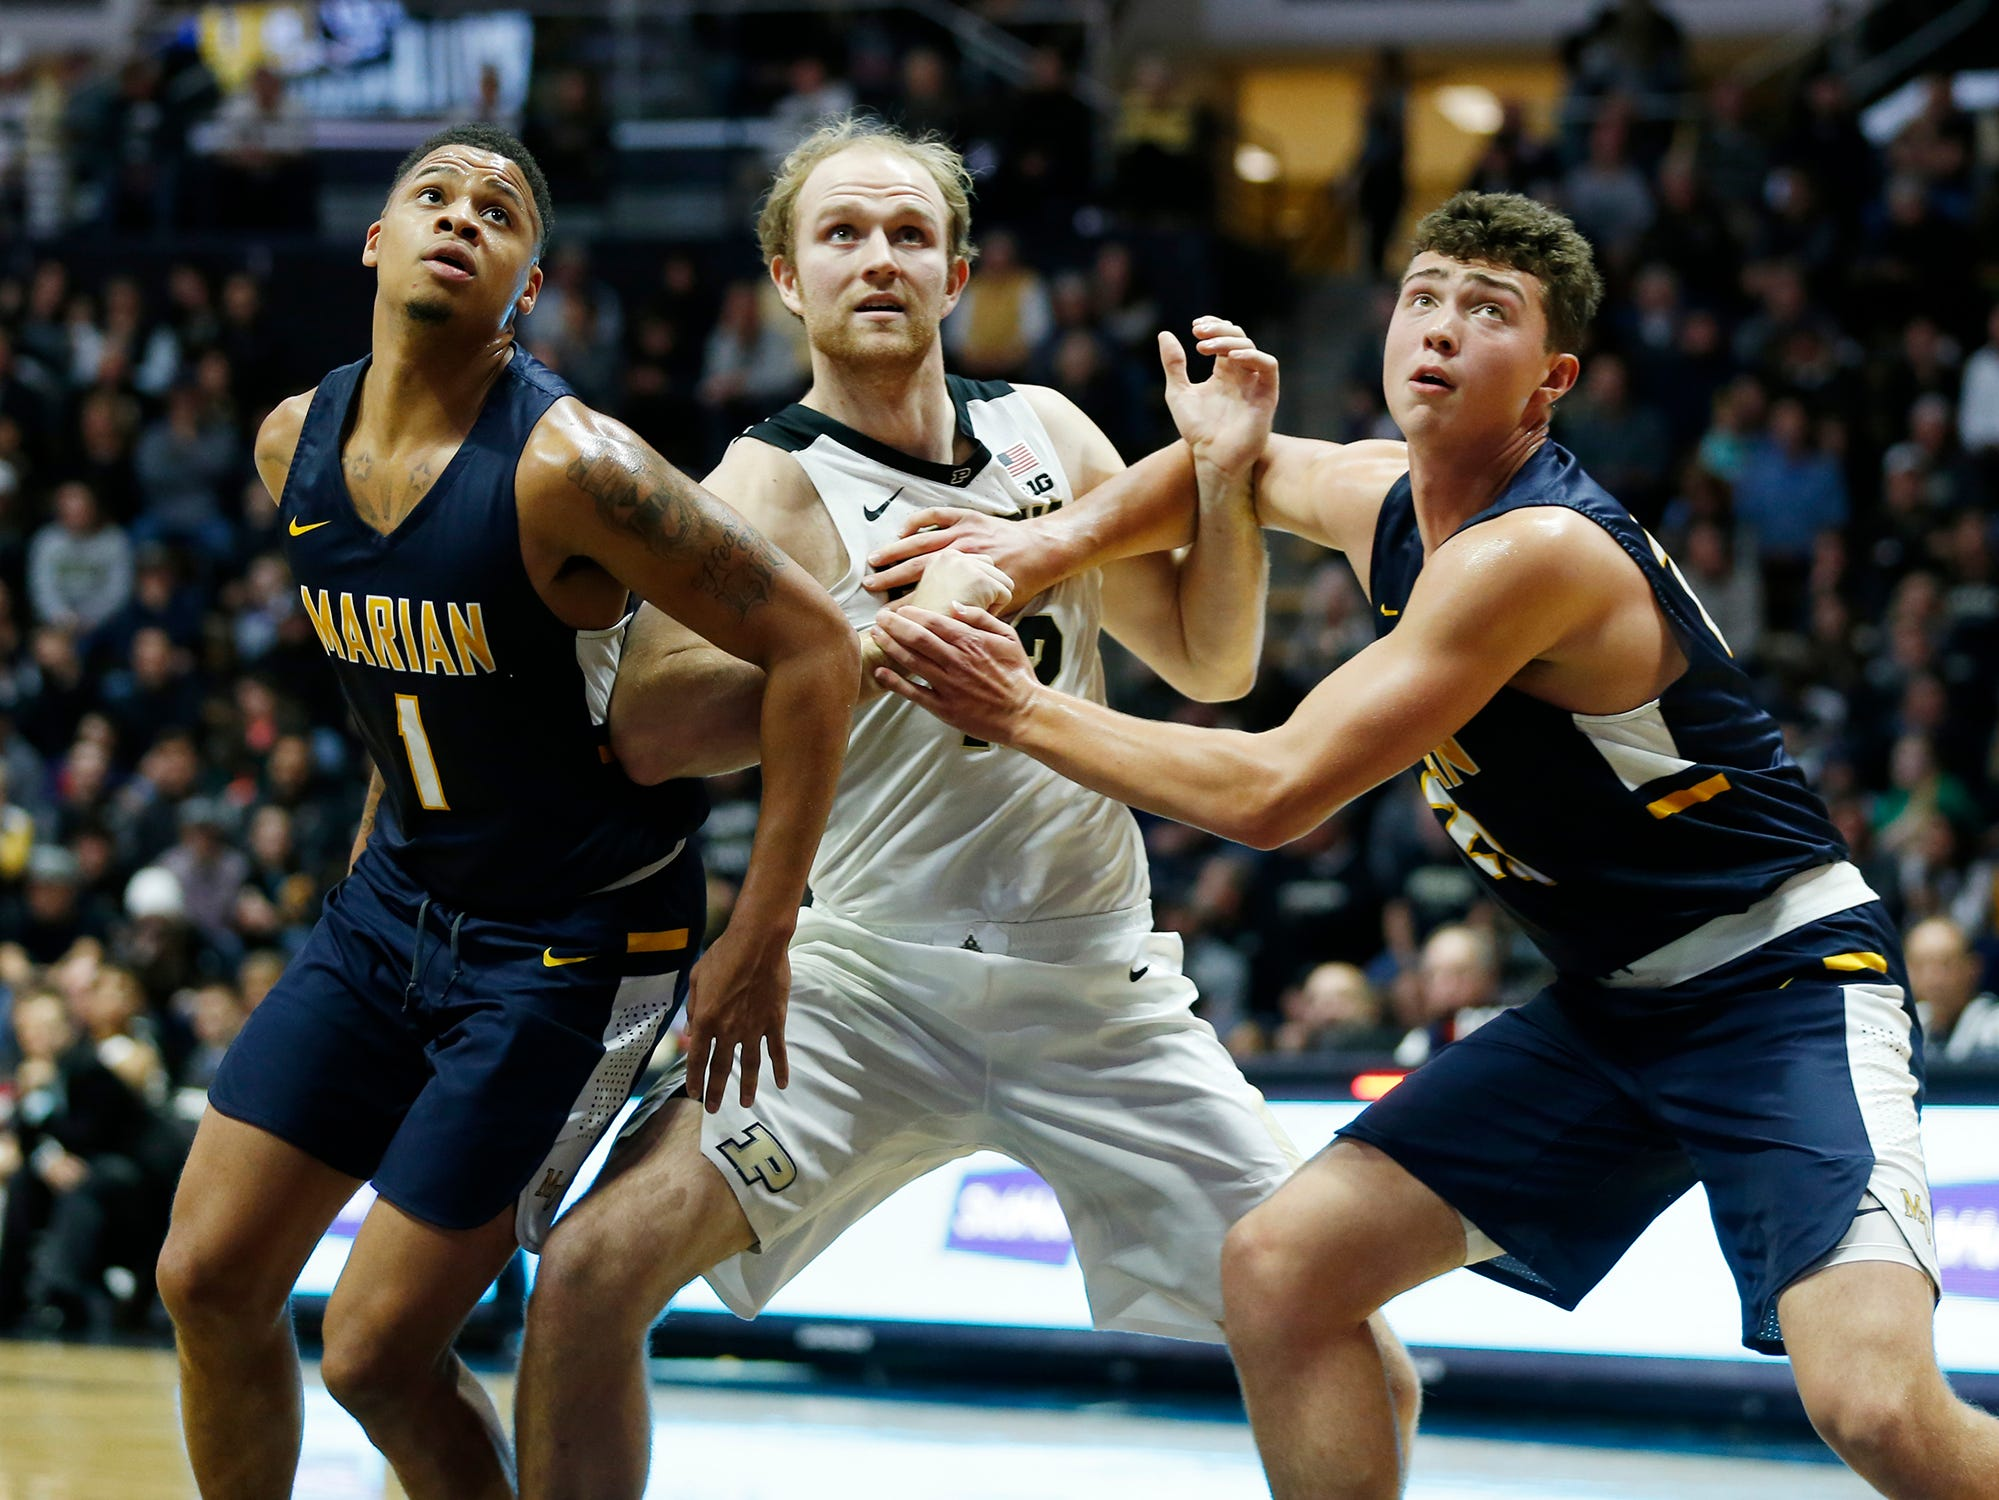 Evan Boudreaux gets sandwiched between TJ Henderson, left, and Luke Gohmann of Marian University during a Purdue free throw attempt in the first half Thursday, November 1, 2018, at Mackey Arena. Purdue defeat Marian University 75-56.